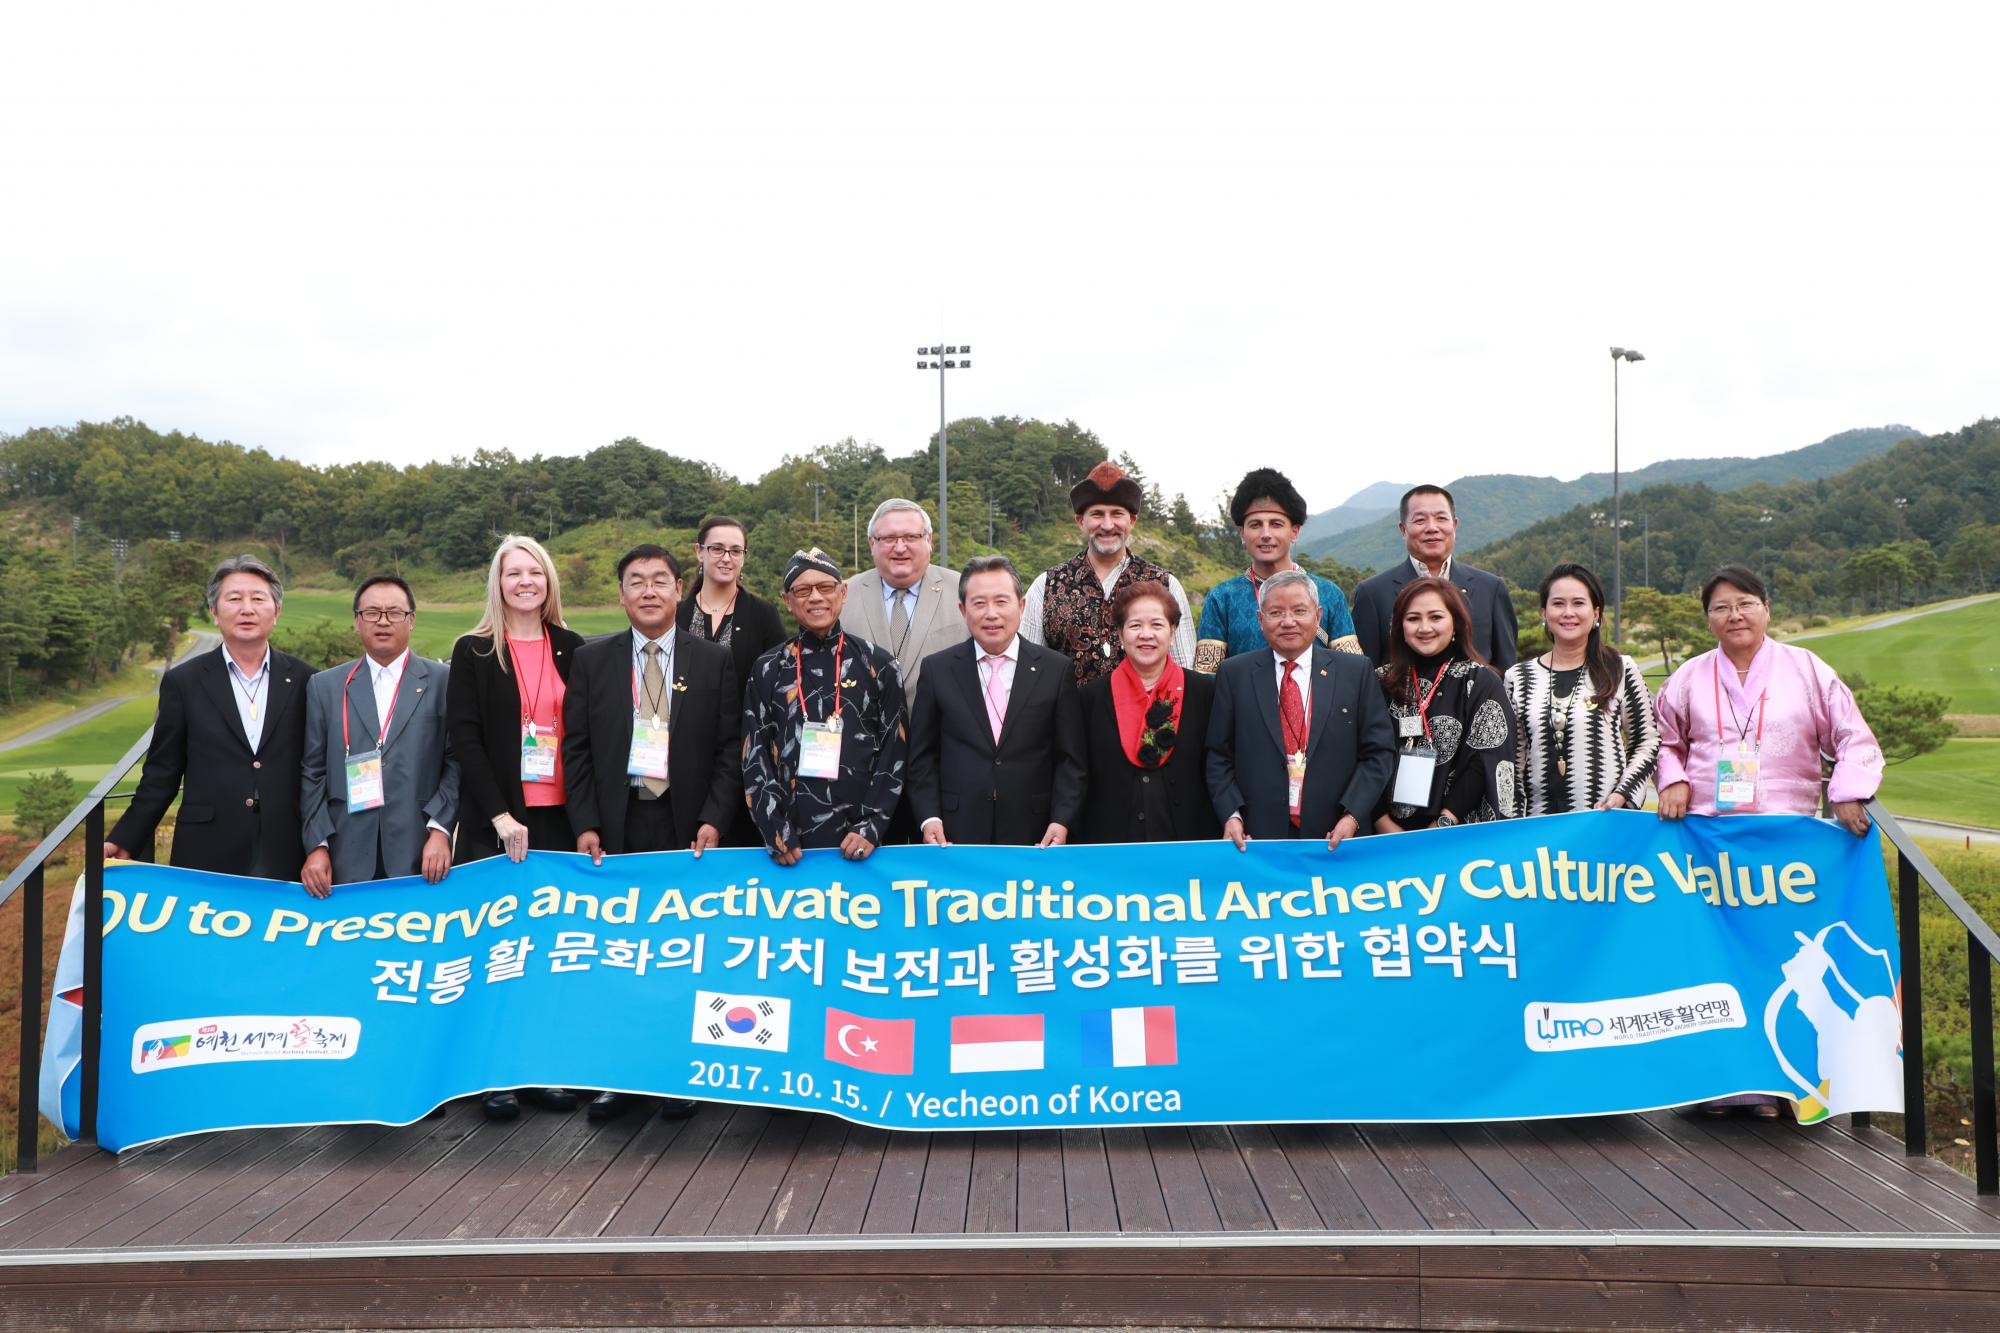 MOU to Preserve and Activate Traditional Archery Culture Value(2017. 10. 15.)